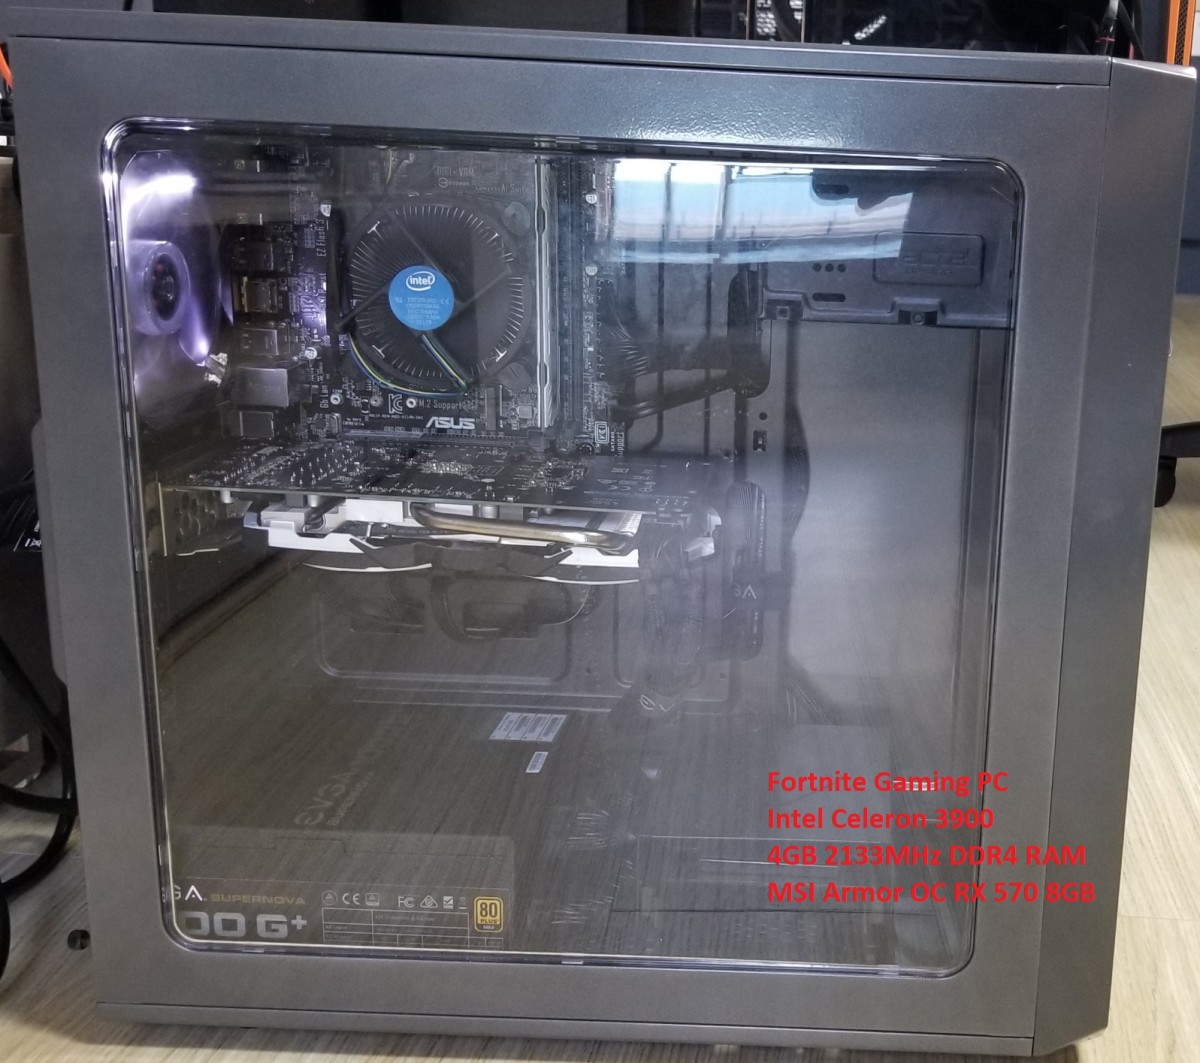 Repurposed Crytocurrency Mining Rig for Fortnite Gaming